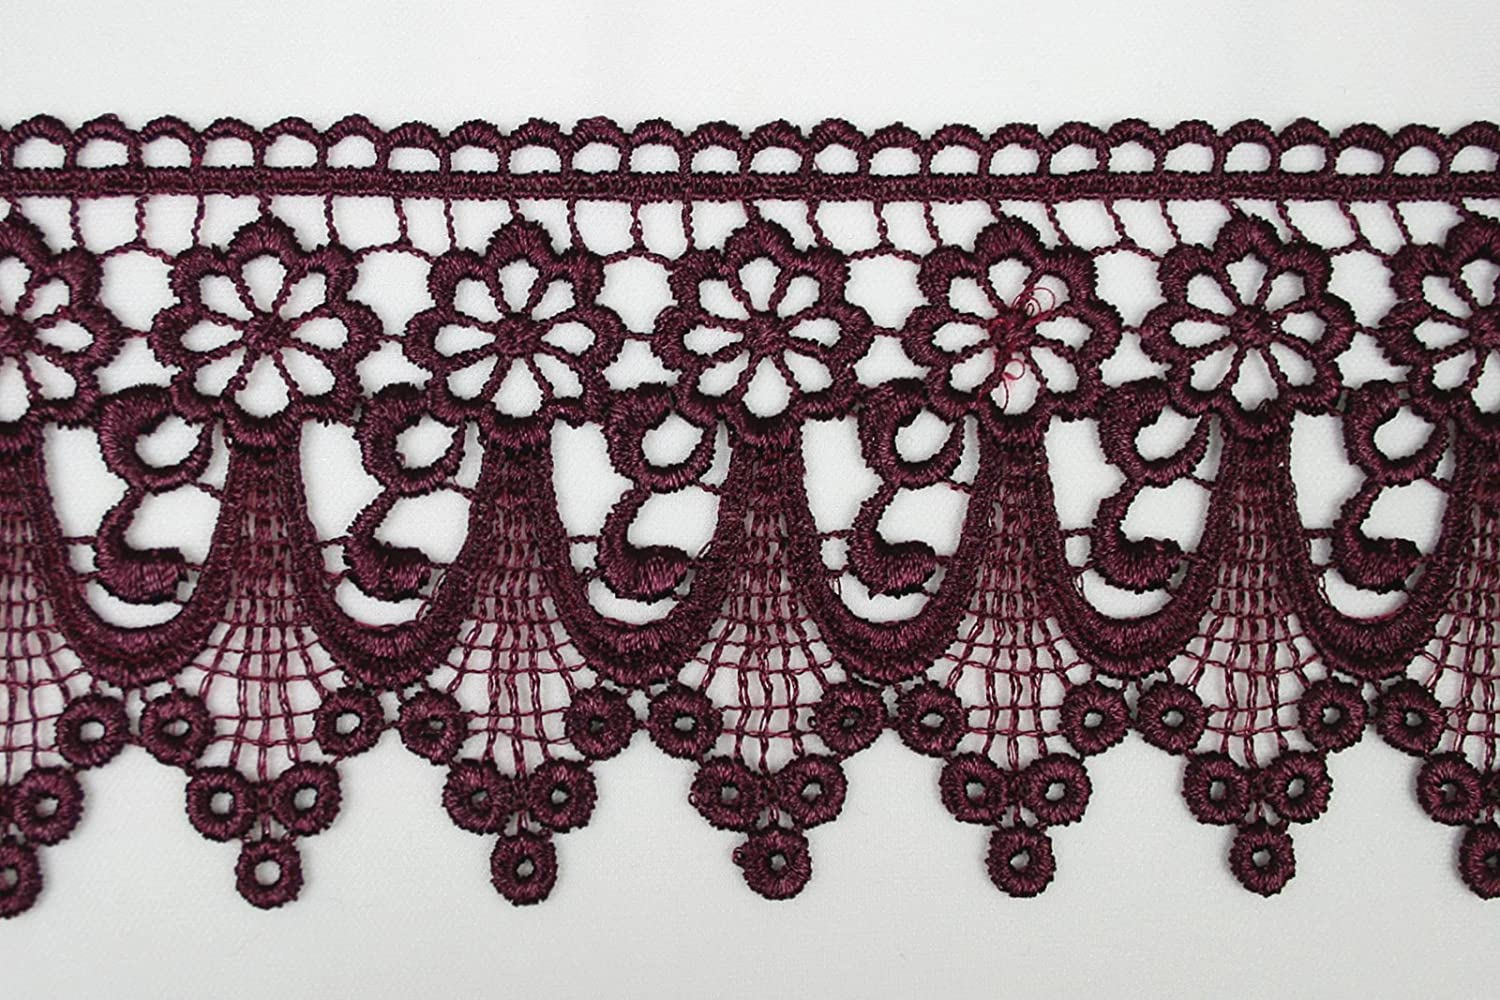 CX002 Altotux 3 Eggplant Embroidered Floral Scalloped Venice Lace Trim Victorian Guipure Sewing Supplies By Yard